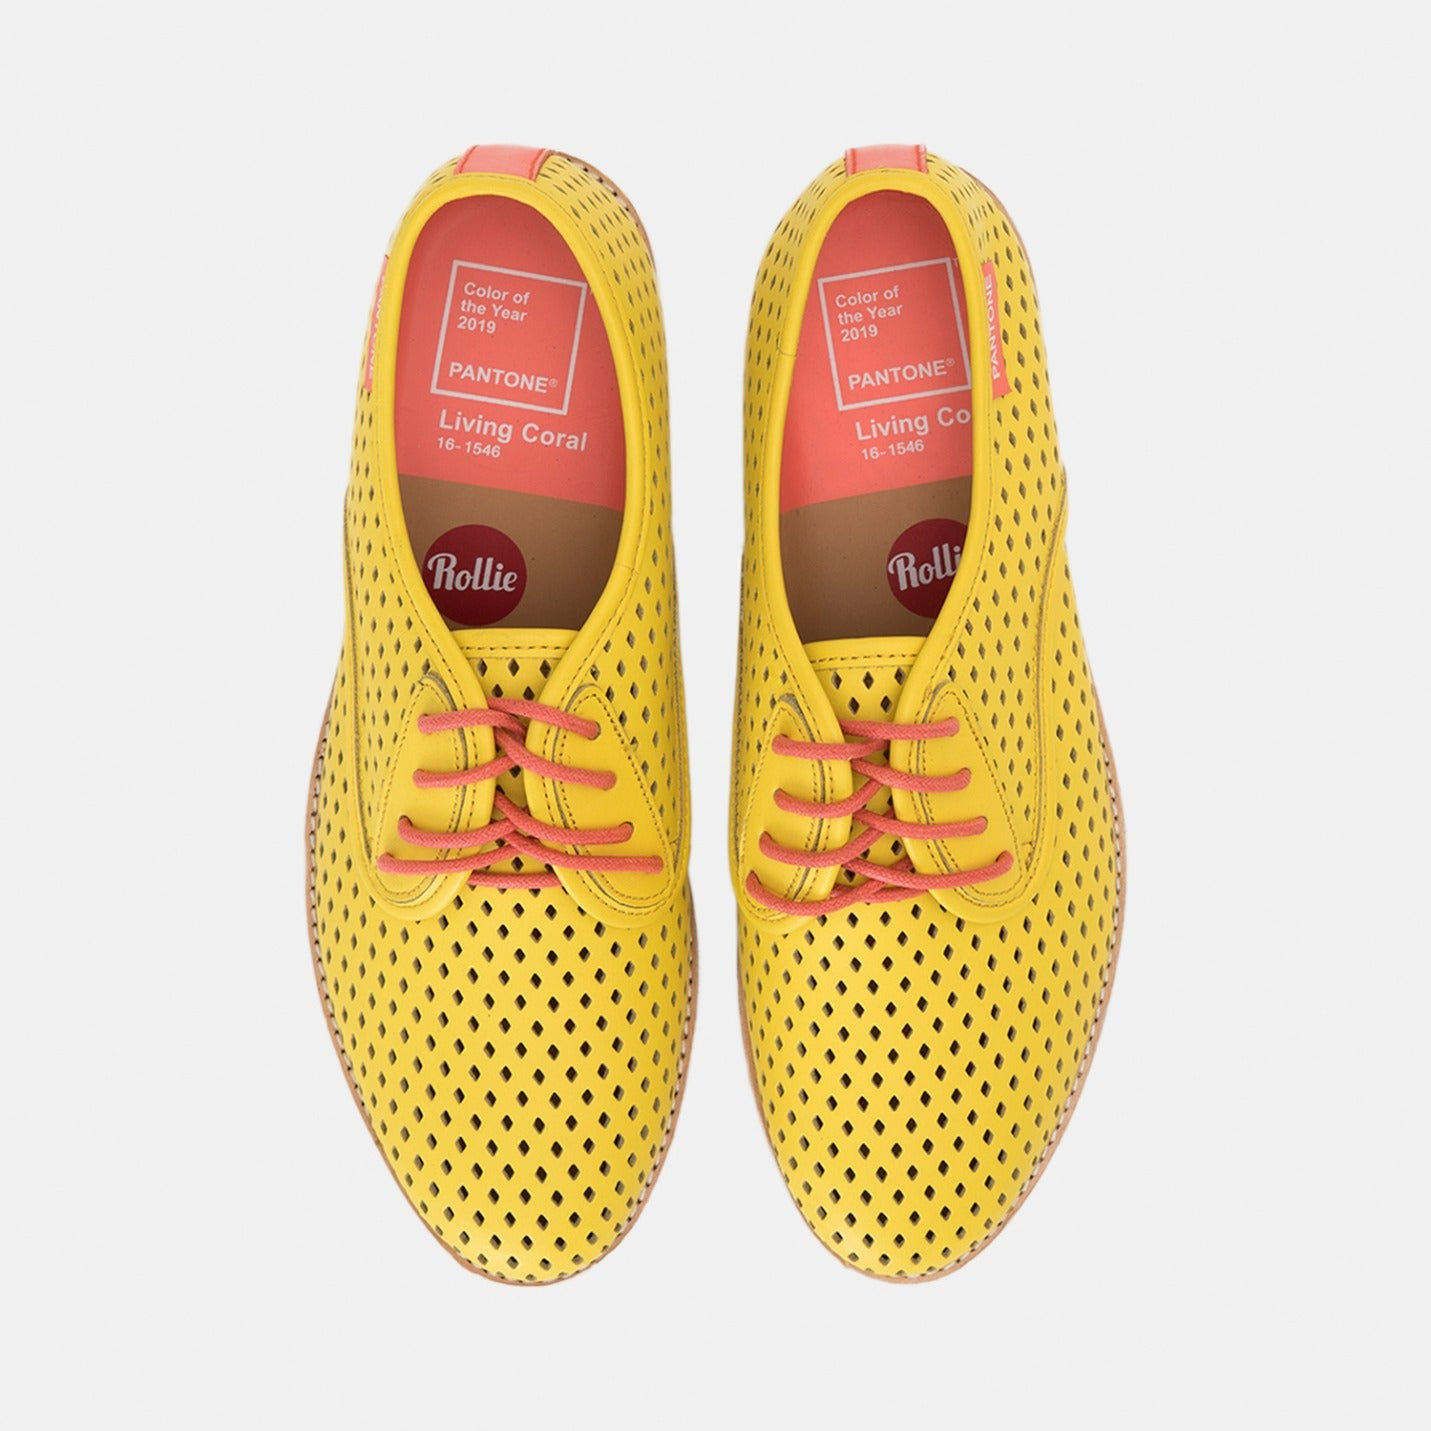 Rollie x Pantone Derby Punch: Vibrant Yellow 13-0858